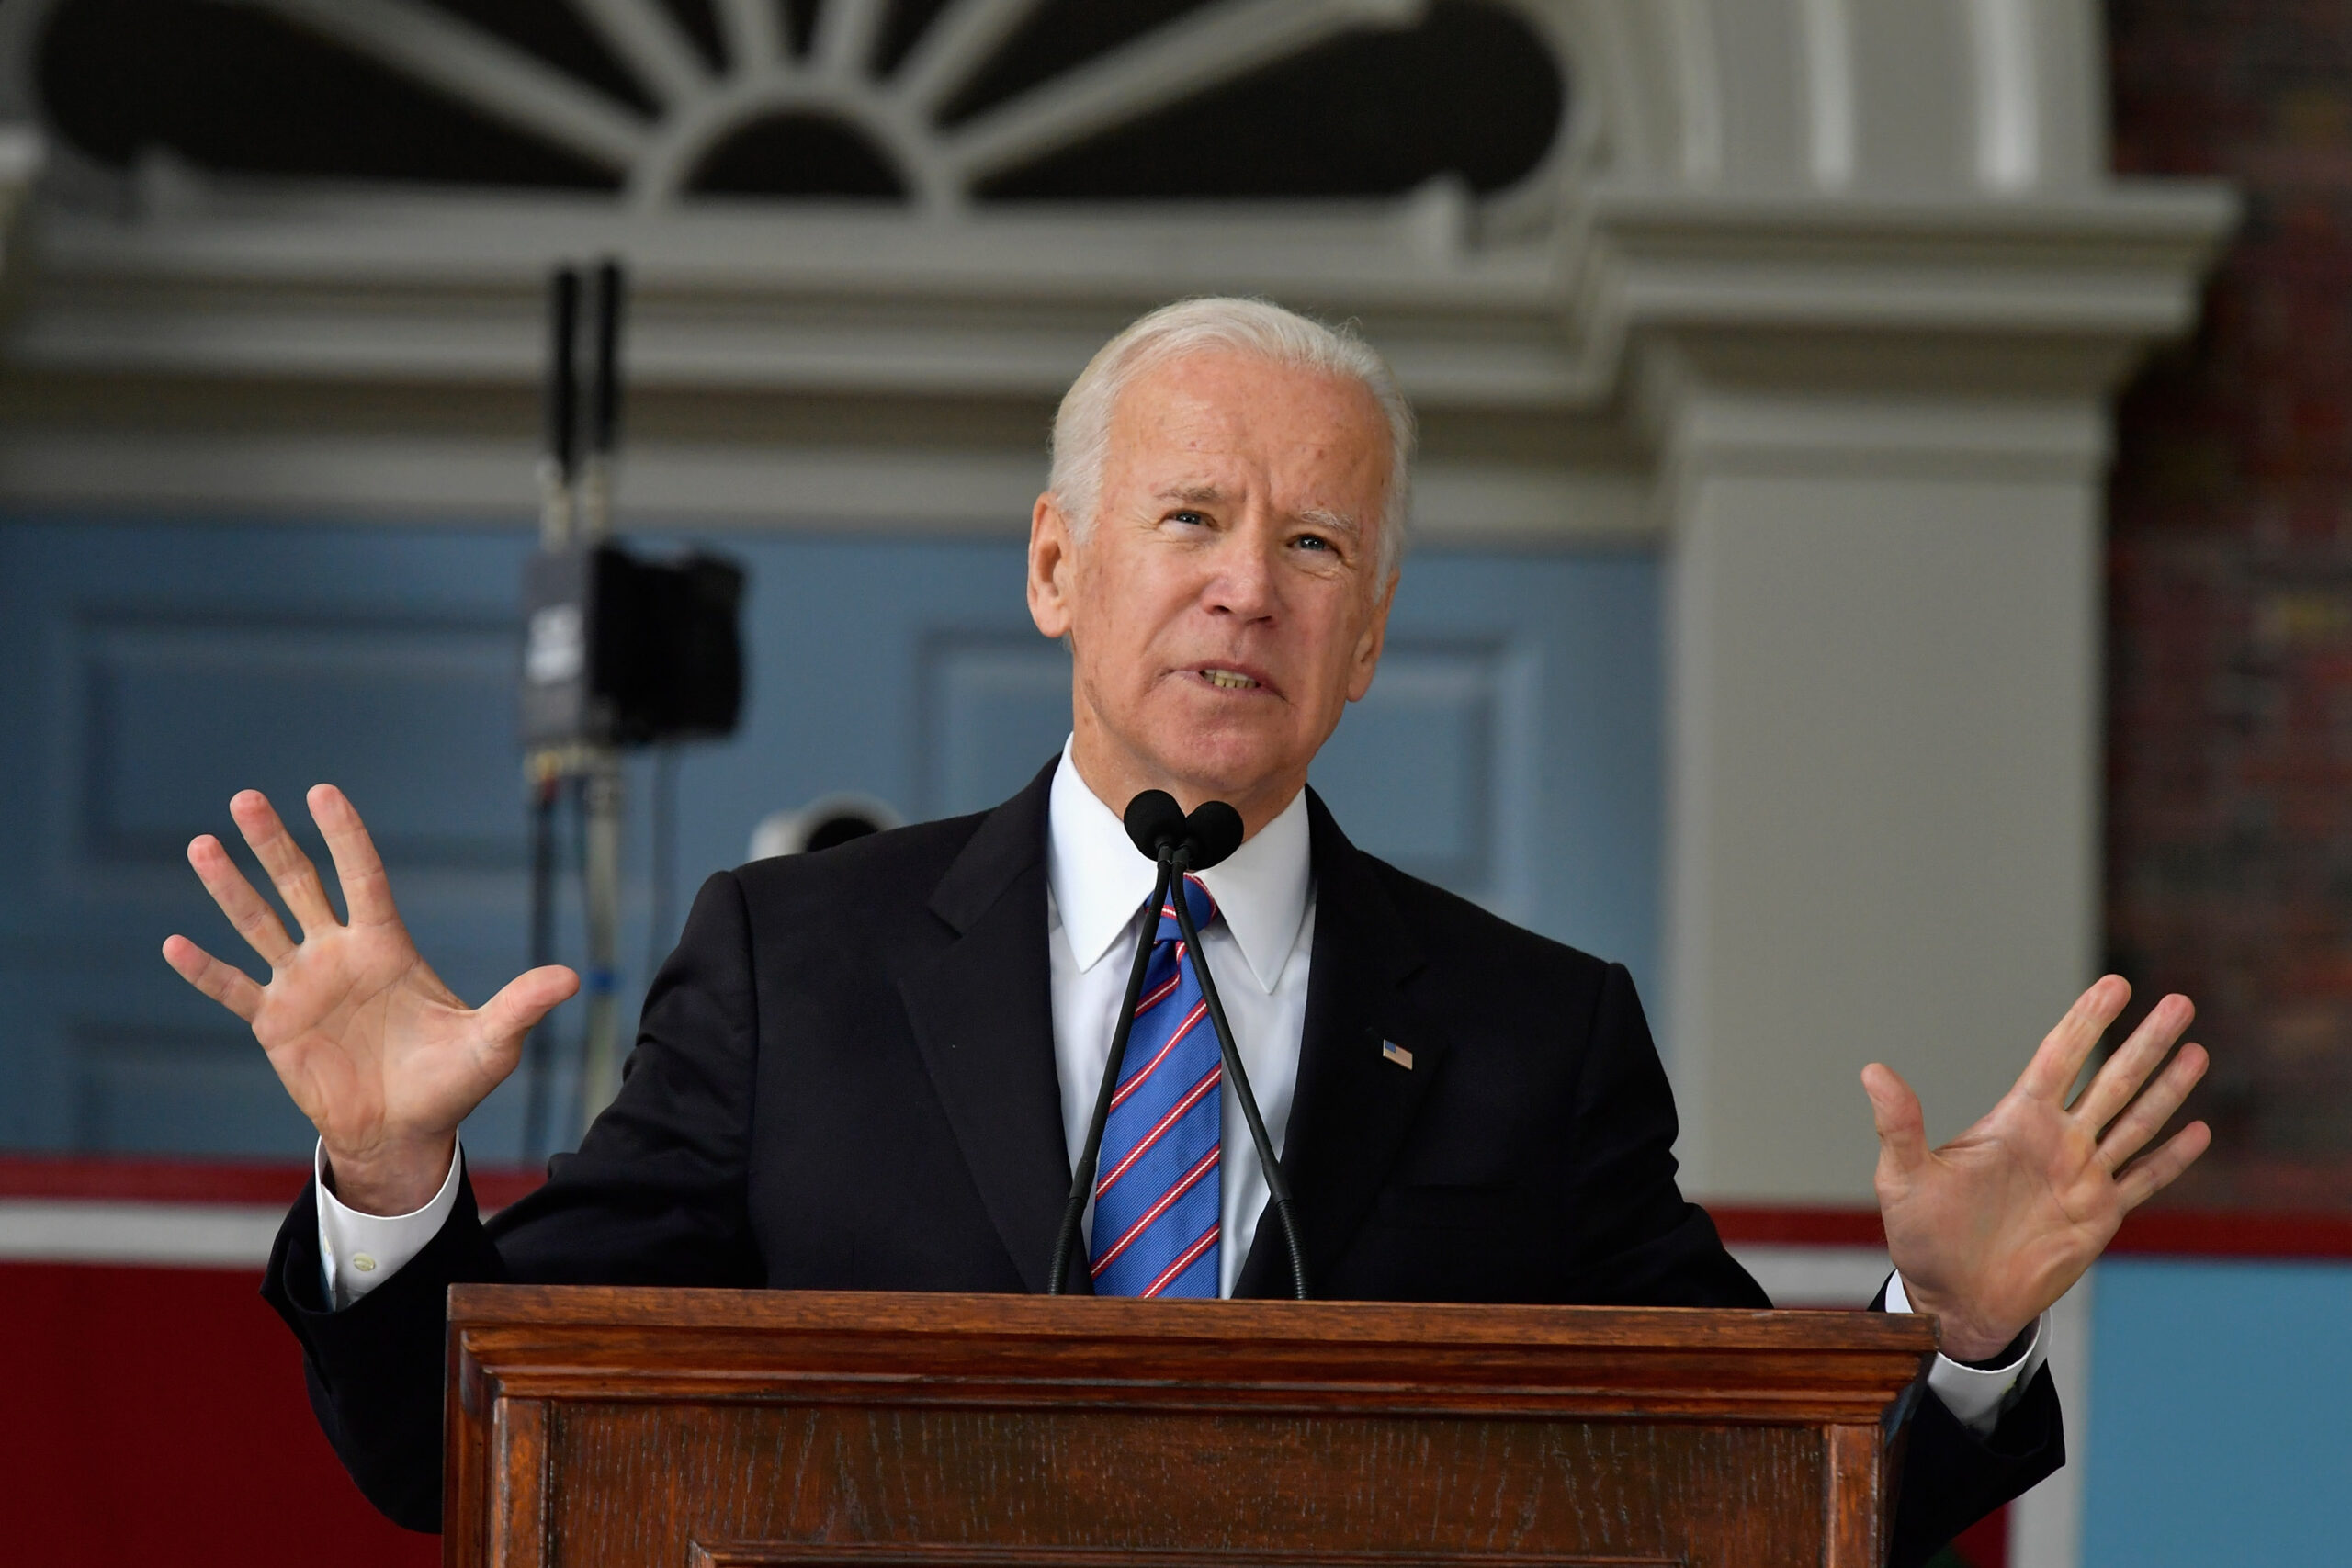 Media: Biden administration to announce new measures to combat illegal migration